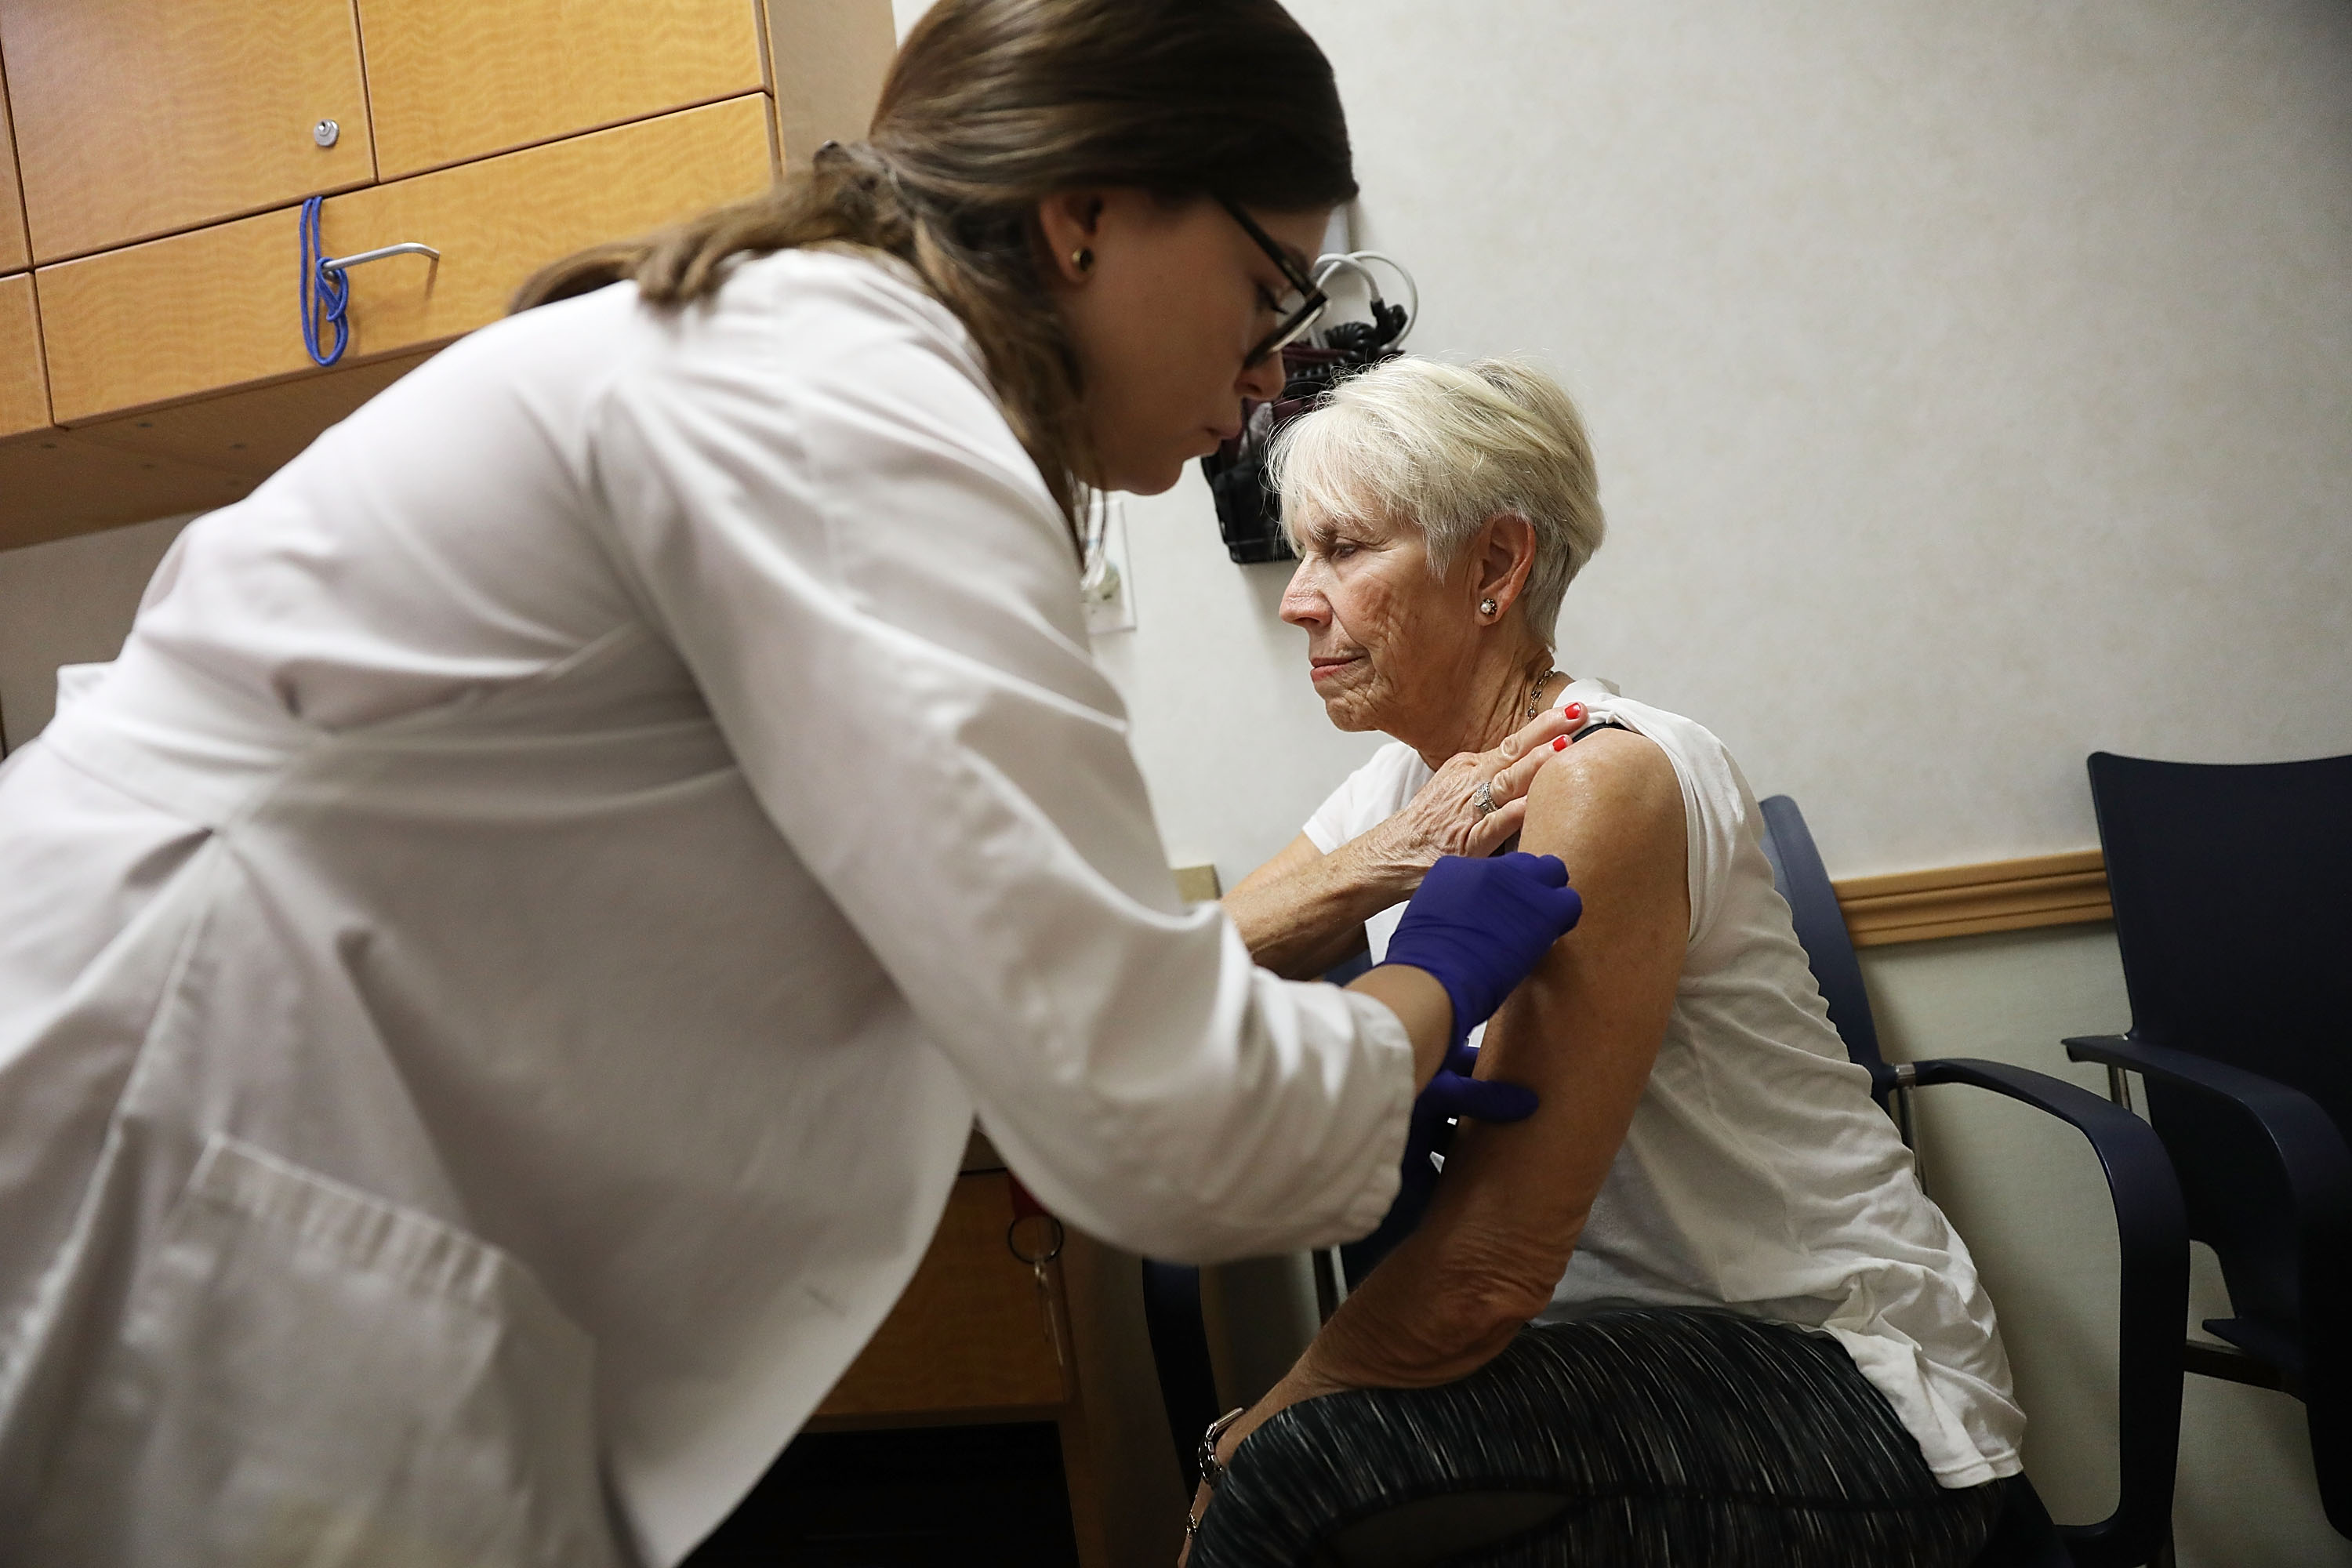 Luanne Boiko receives an influenza vaccination from nurse practitioner, Leslie Suarez, at the CVS Pharmacy store's MinuteClinic on October 4, 2018 in Miami, Florida. Joe Raedle/Getty Images